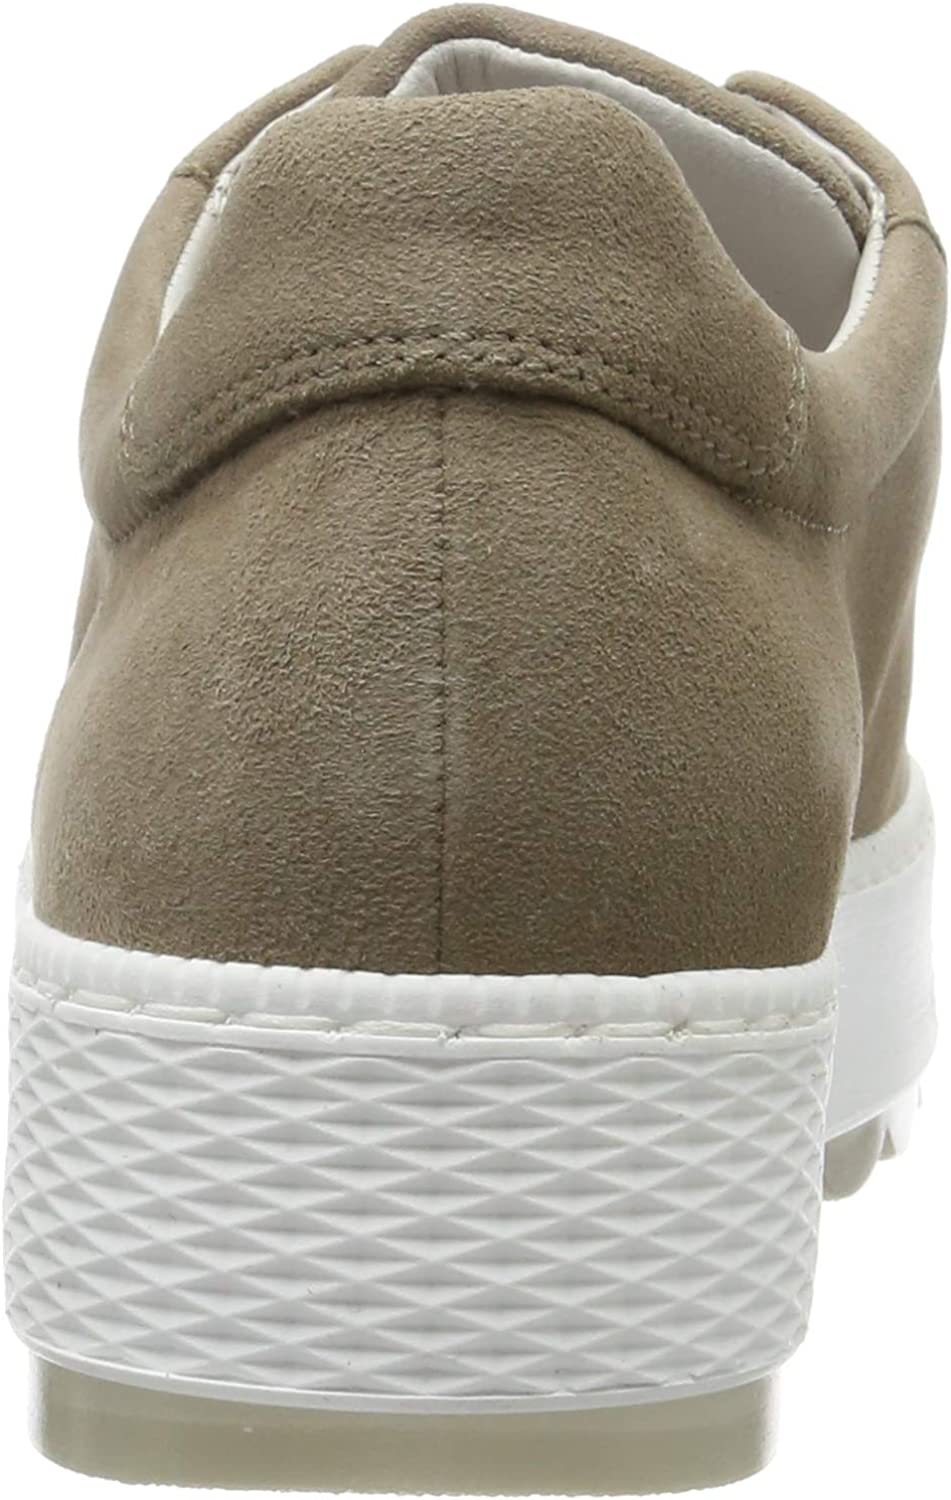 Gabor Shoes Comfort Basic, Sneakers Basses Femme Beige Sahara 41